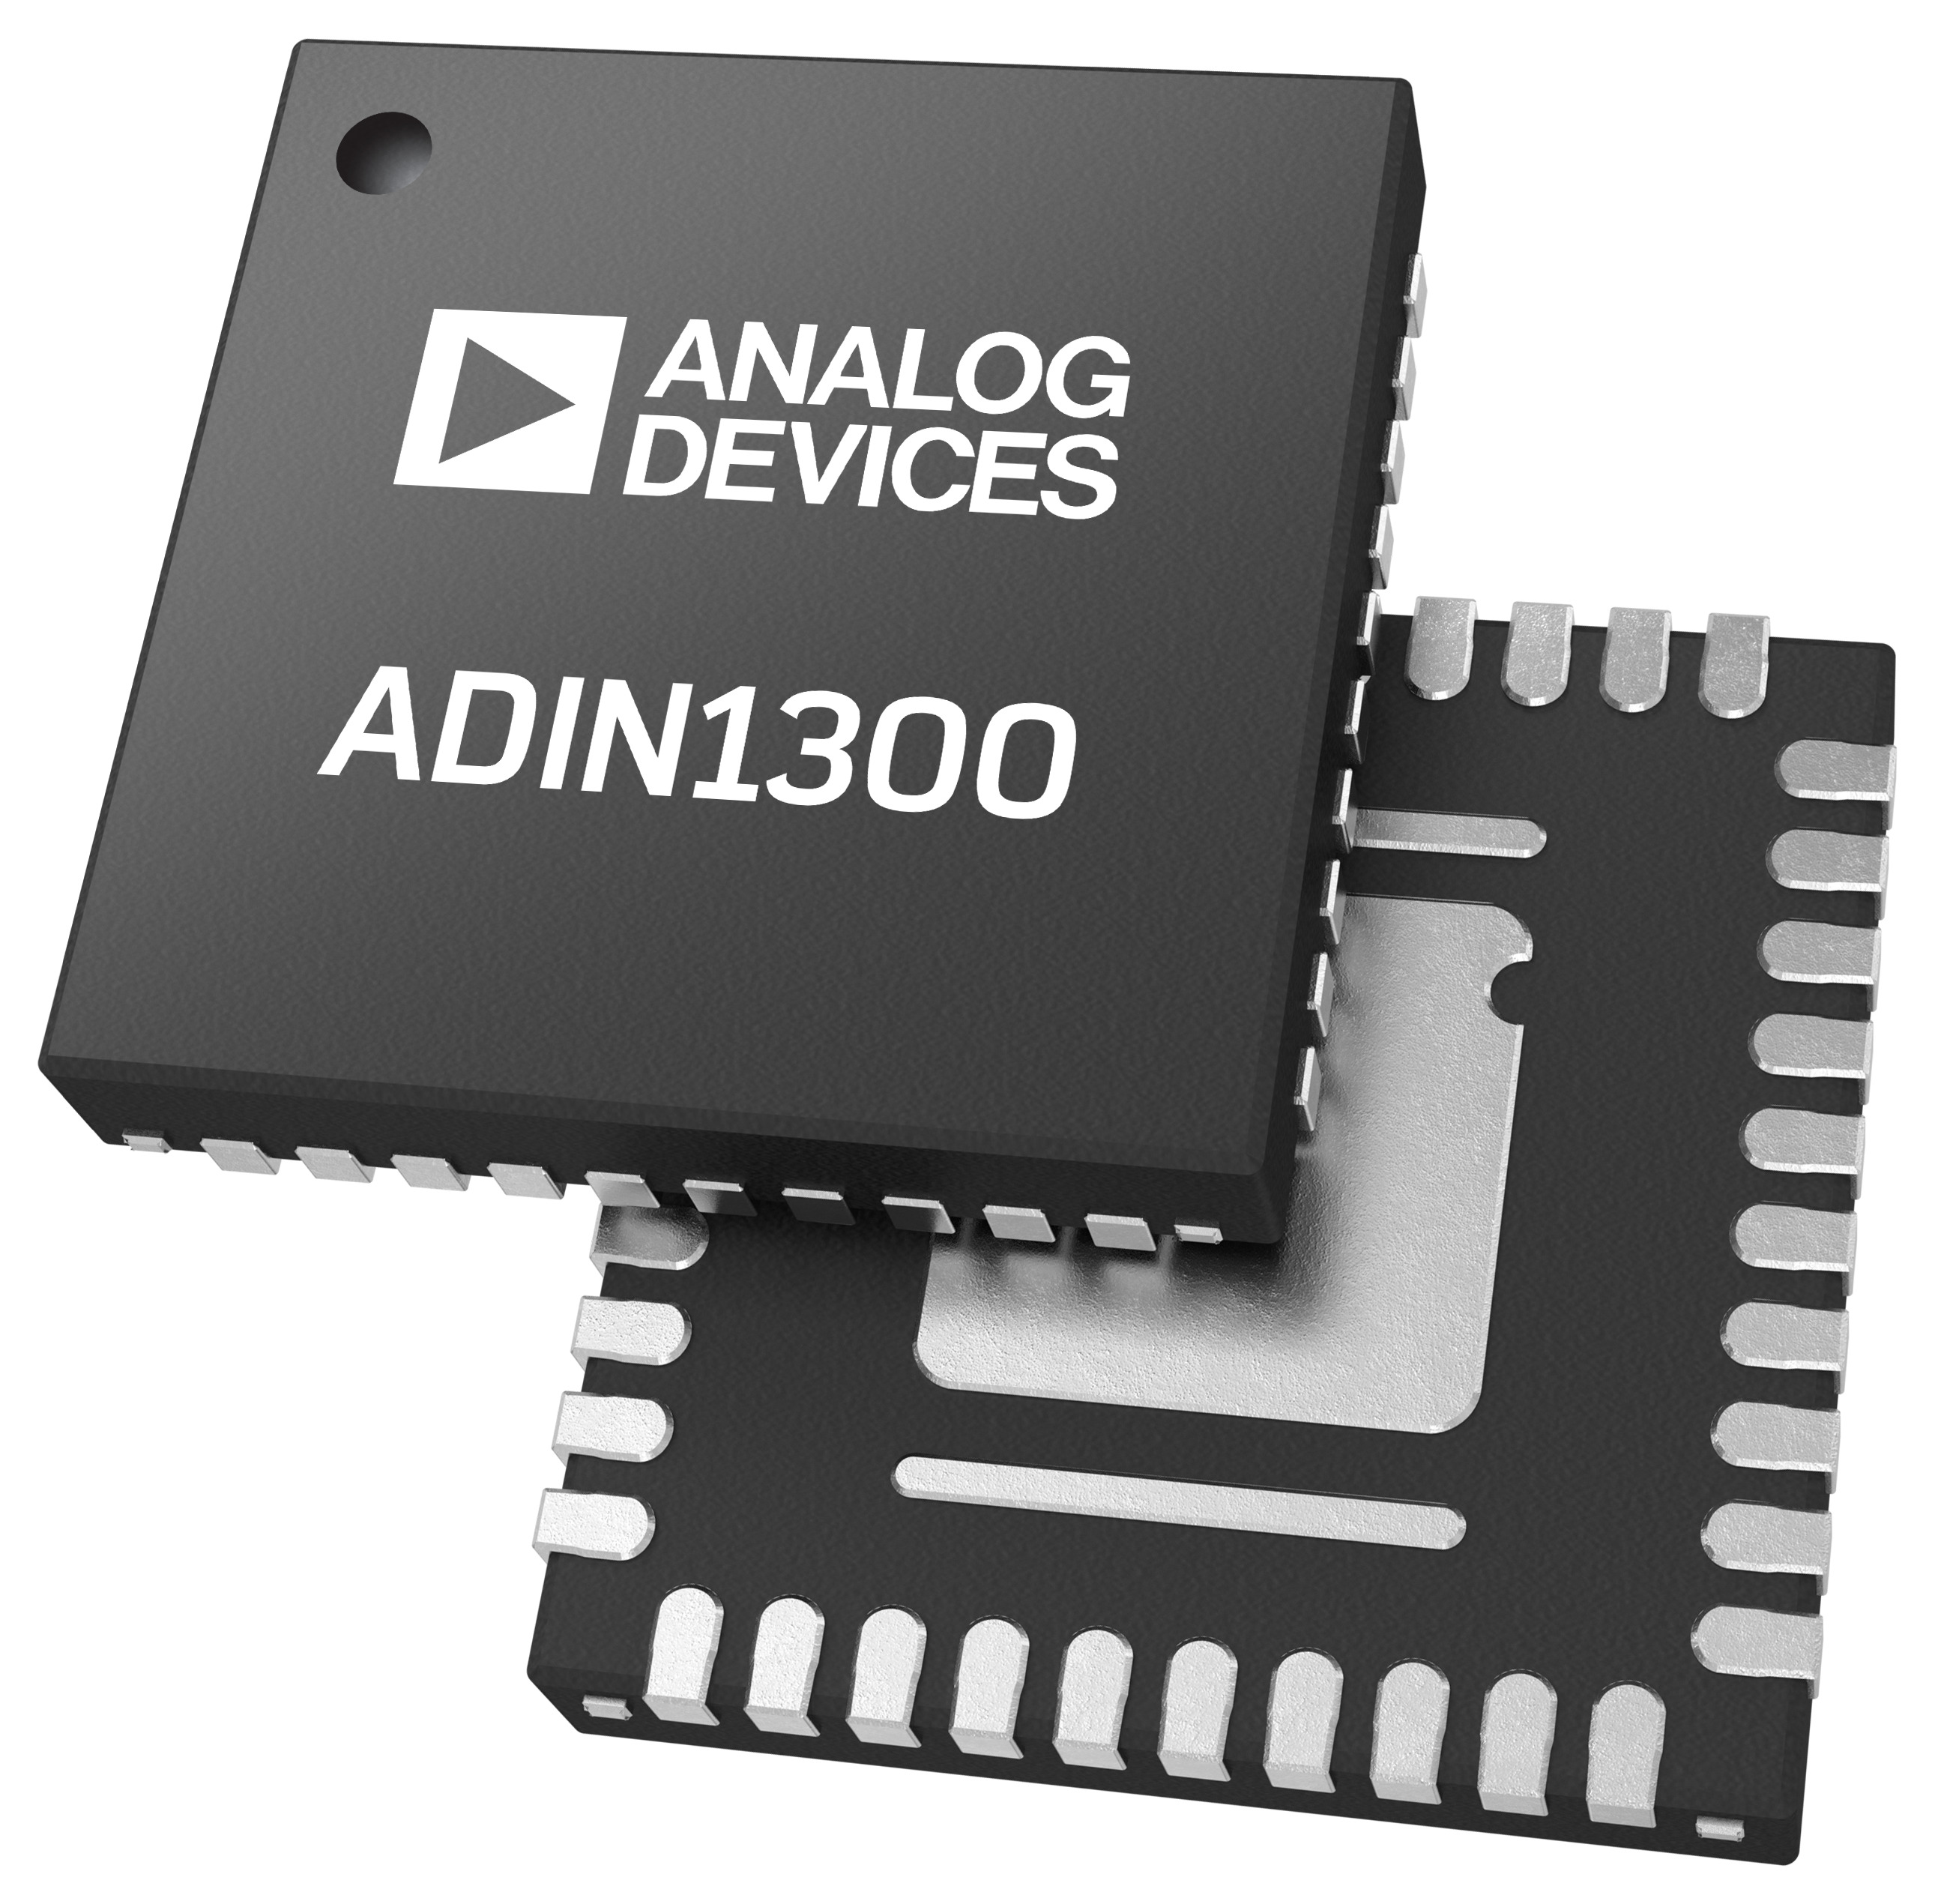 Image courtesy of Analog Devices